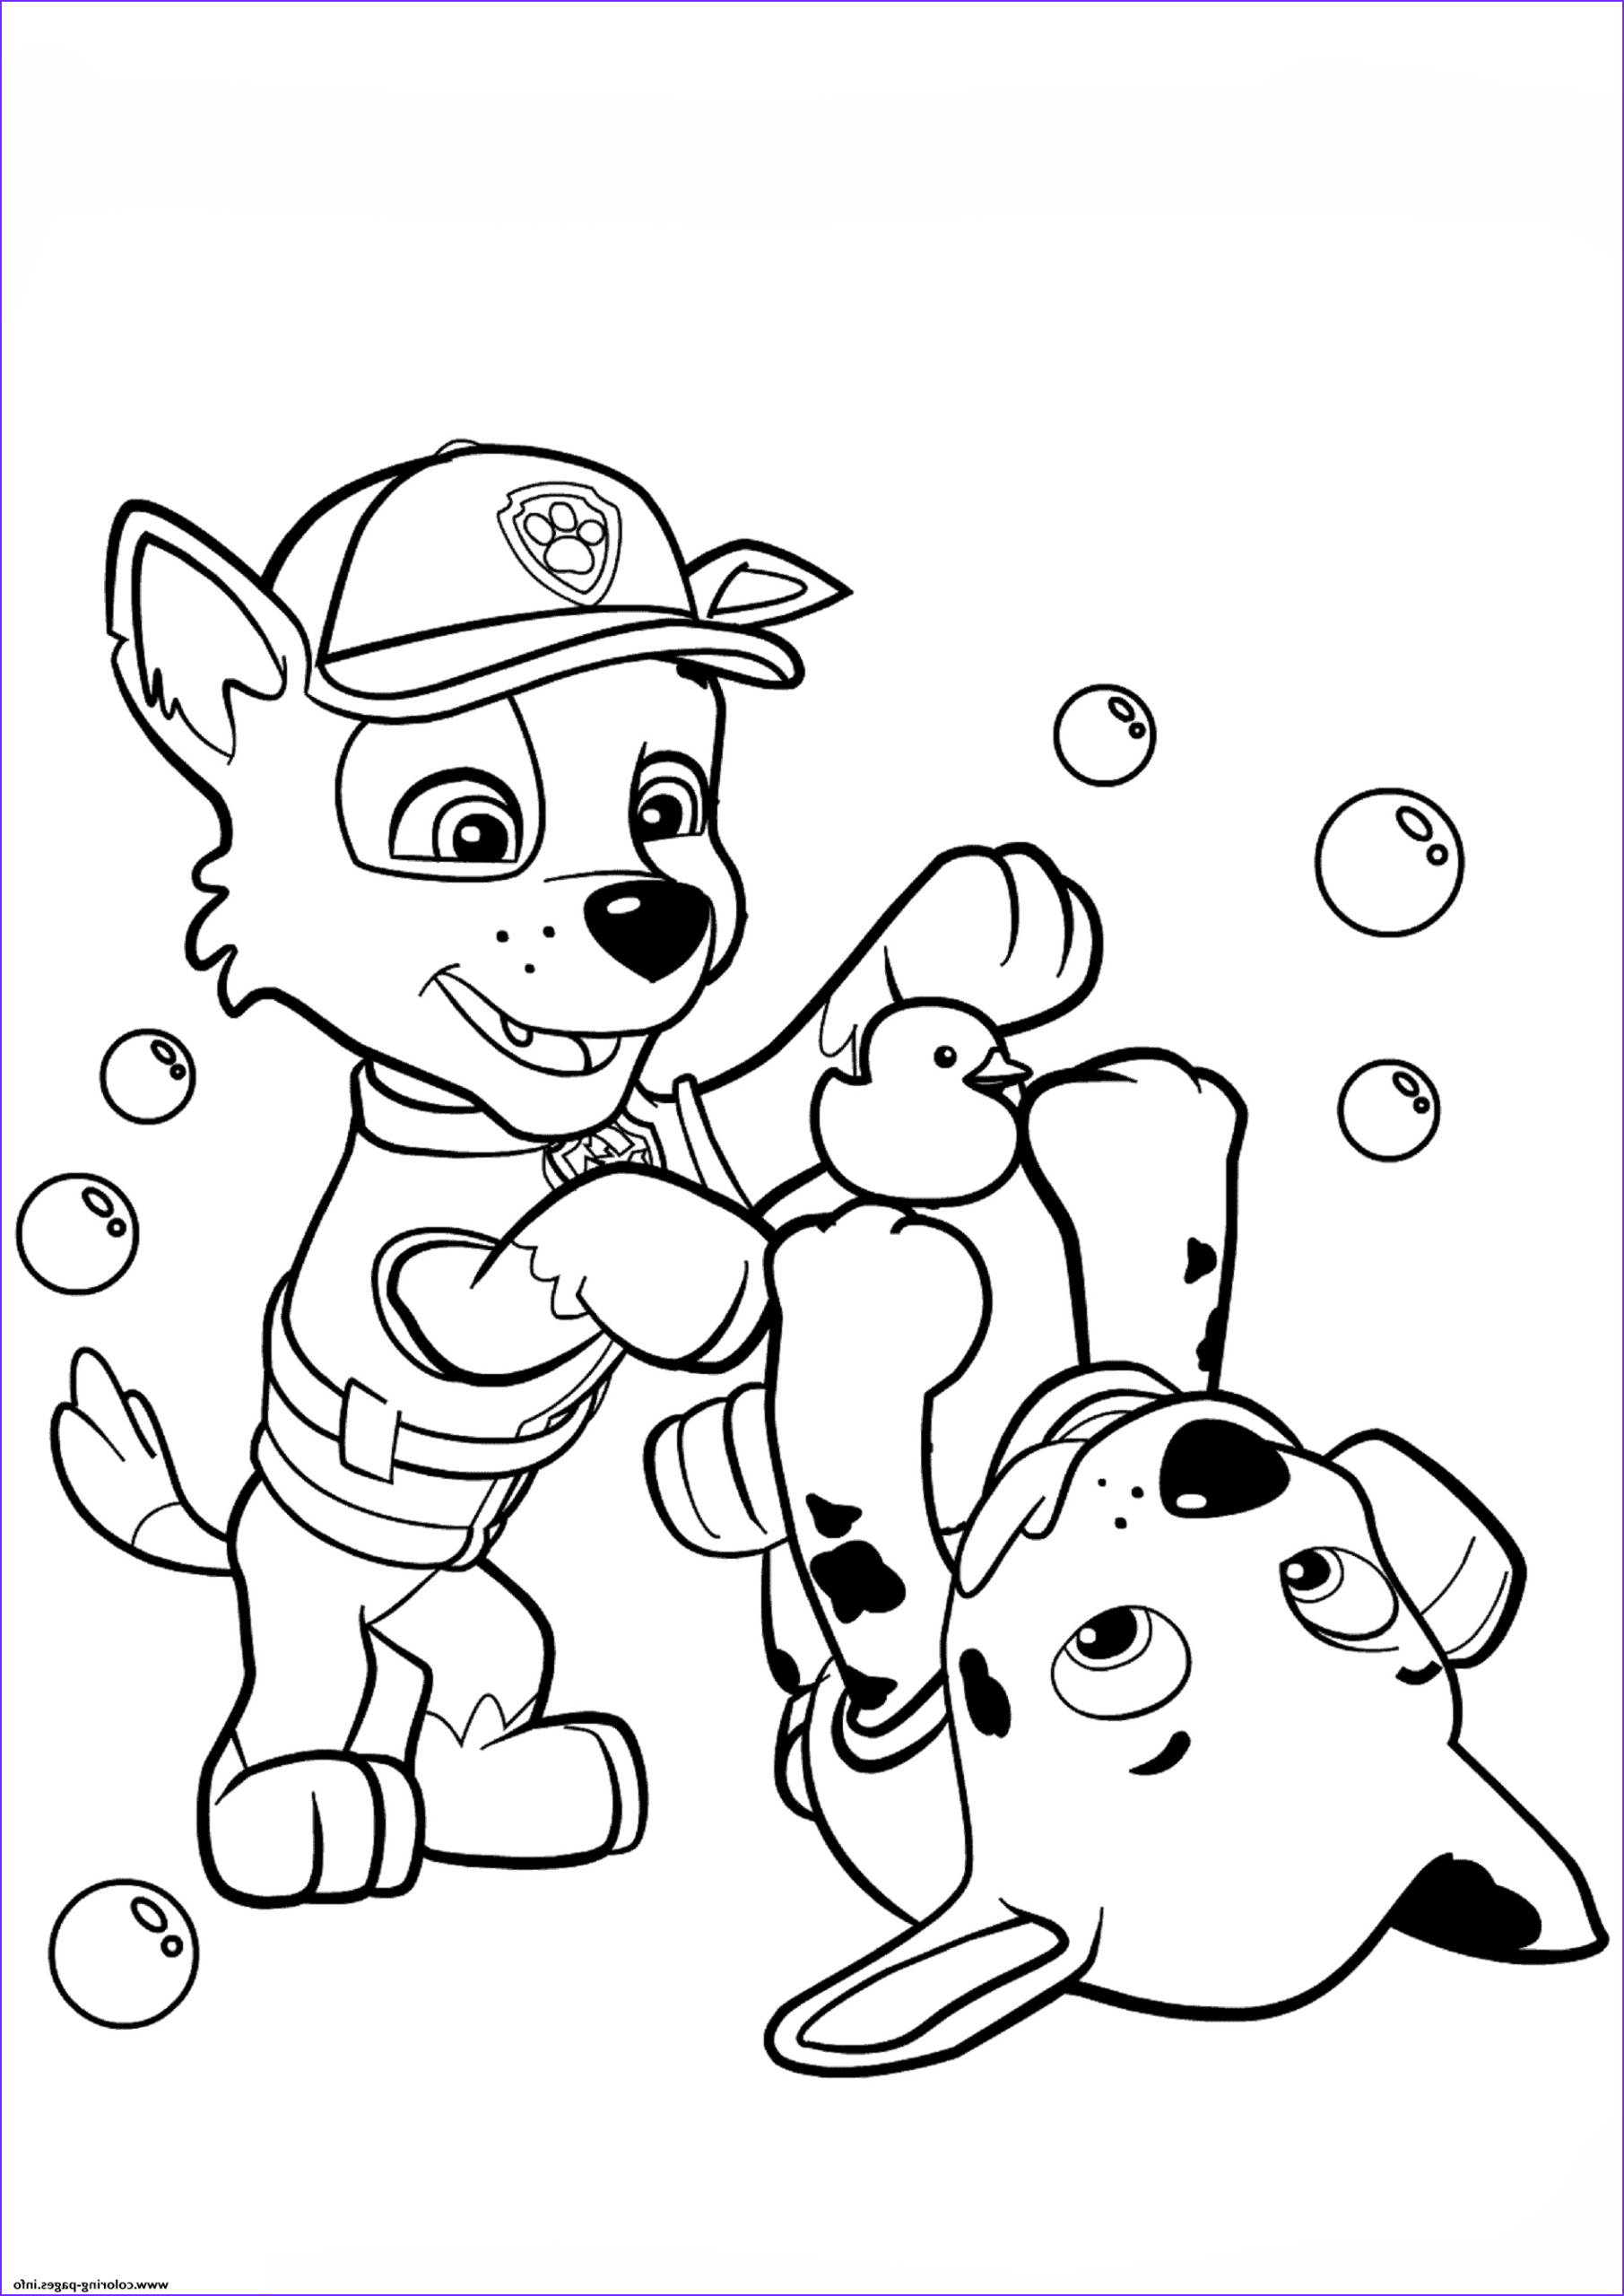 Coloring Paw Patrol Unique Photos Print Paw Patrol Rocky and Marshall Coloring Pages